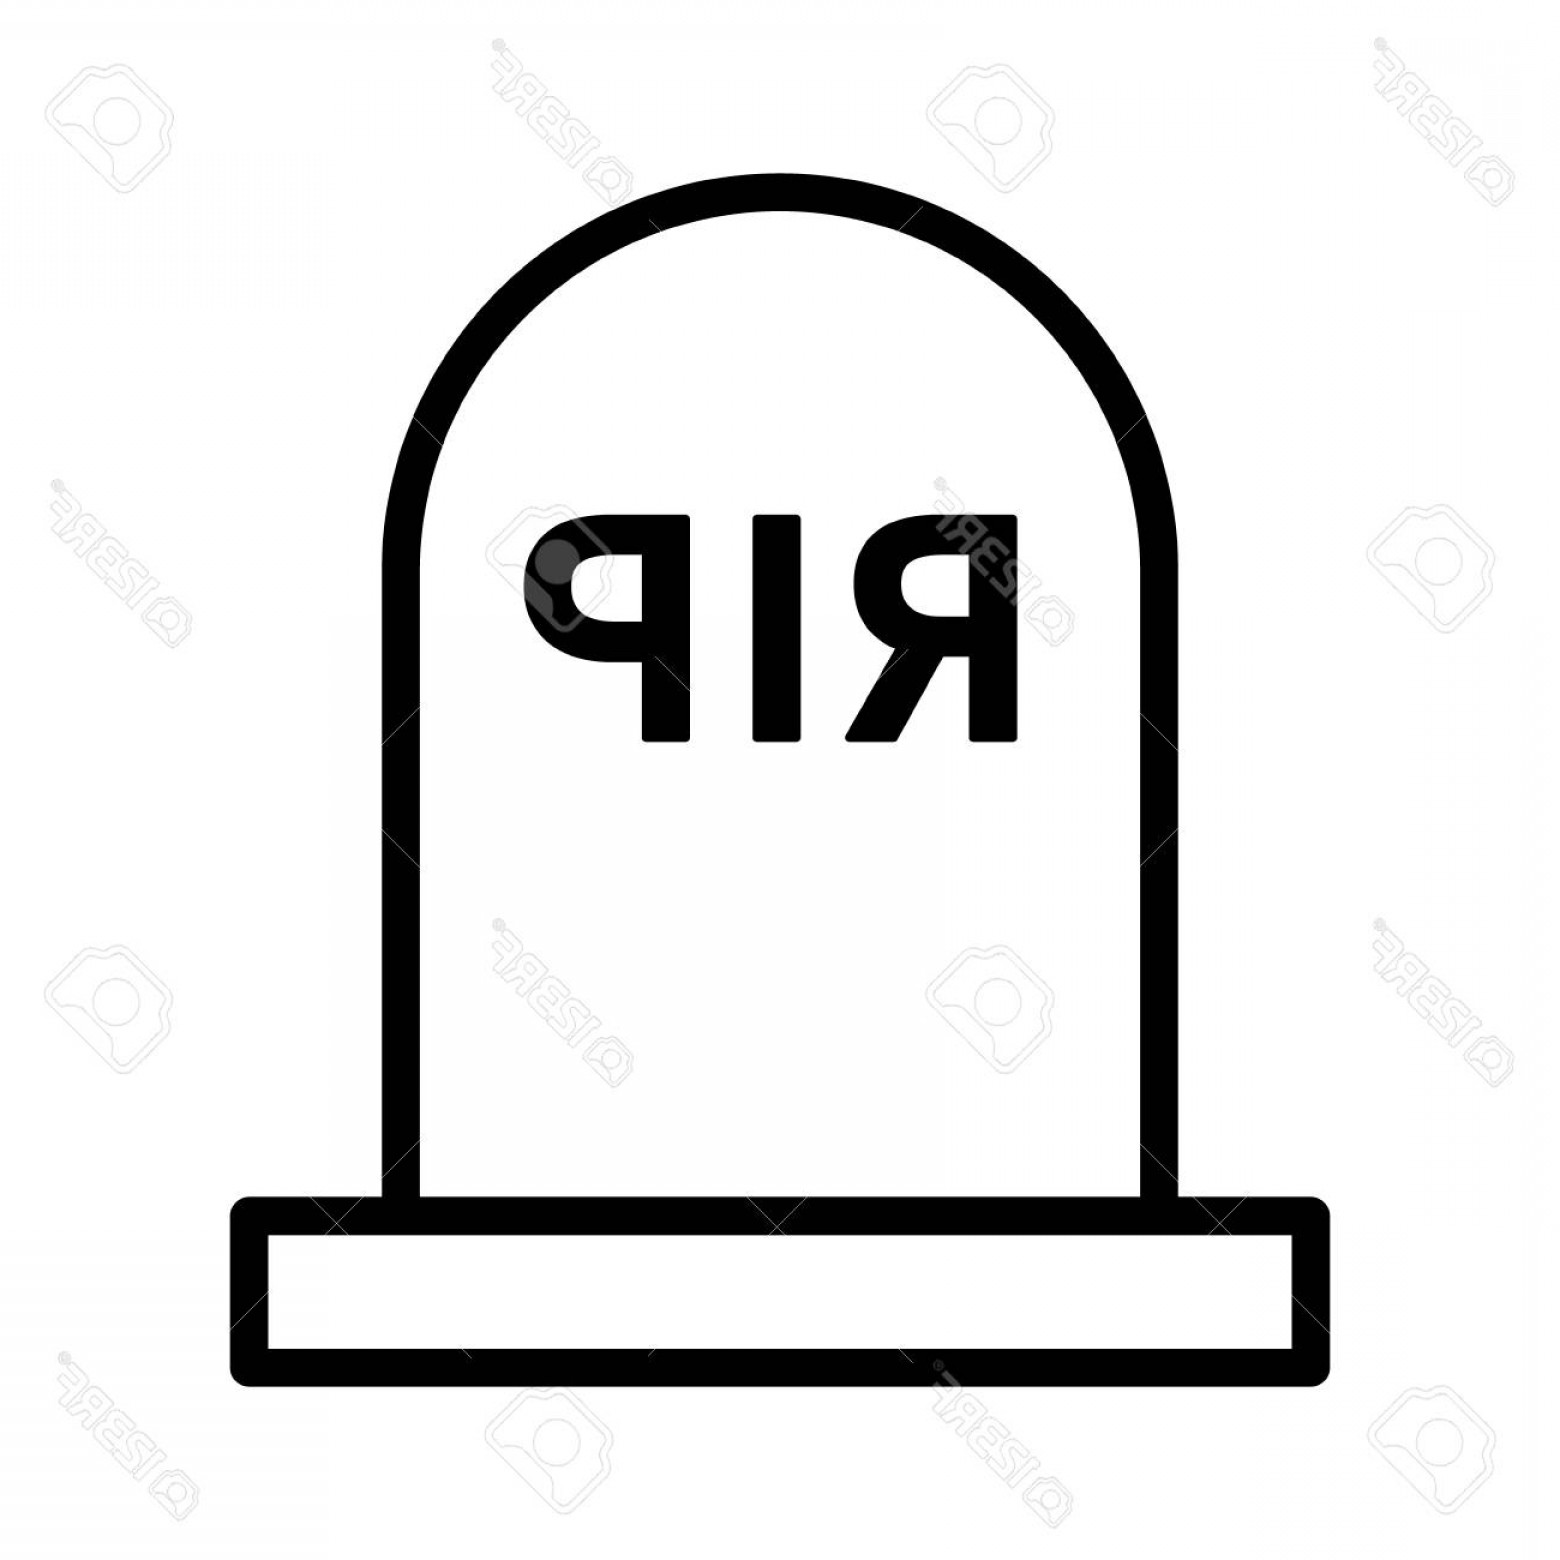 Rip Clip Art Vector: Photostock Vector Headstone Gravestone Tombstone With Rip Rest In Peace For The Dead Line Art Vector Icon For Games An